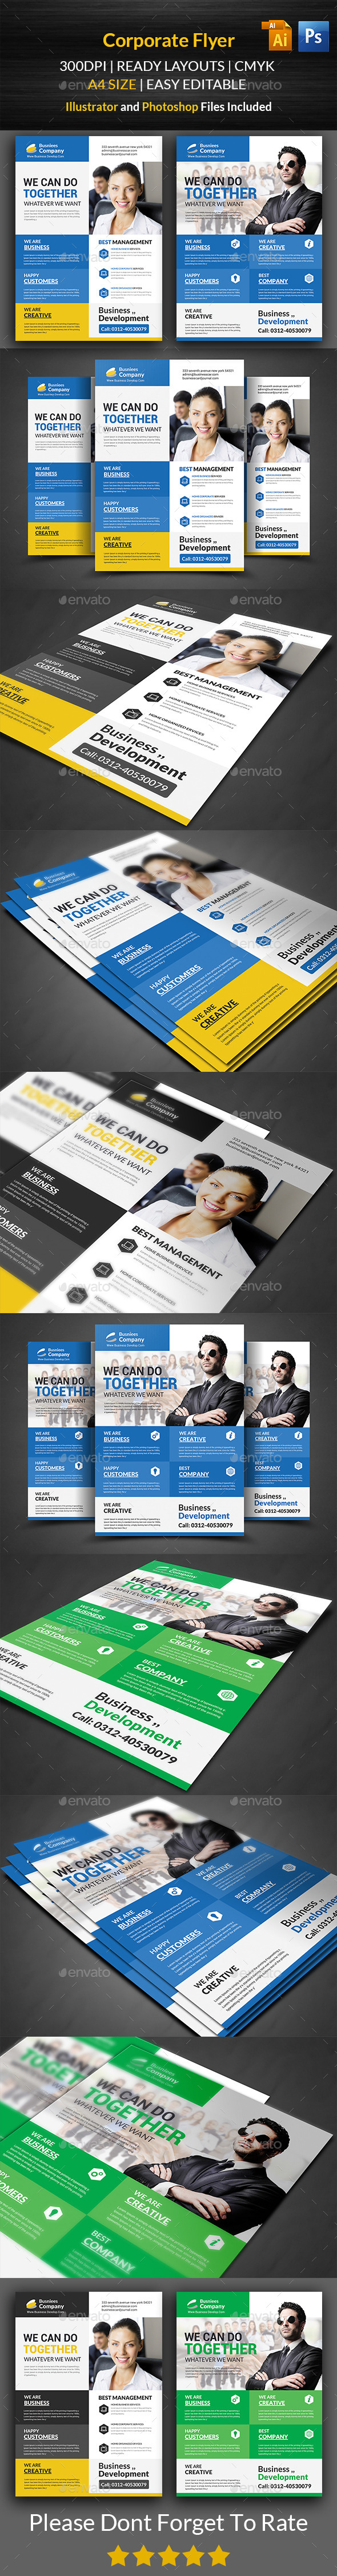 GraphicRiver Corporate Flyer Template 11817520